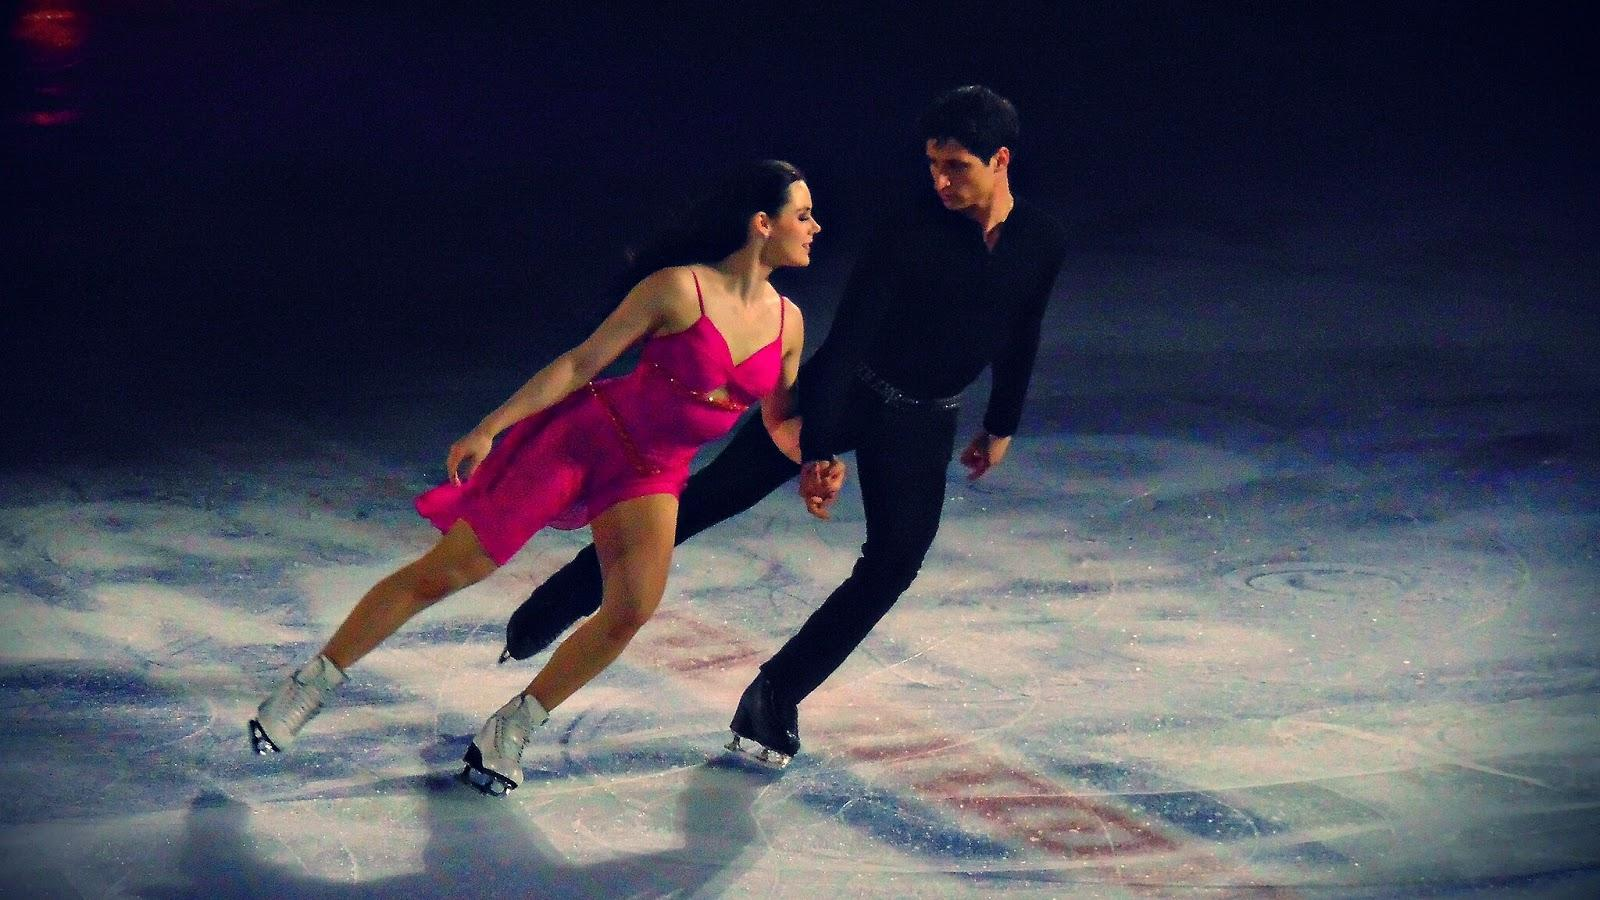 Let's Discuss: Tessa Virtue & Scott Moir's Return to Competitive Ice